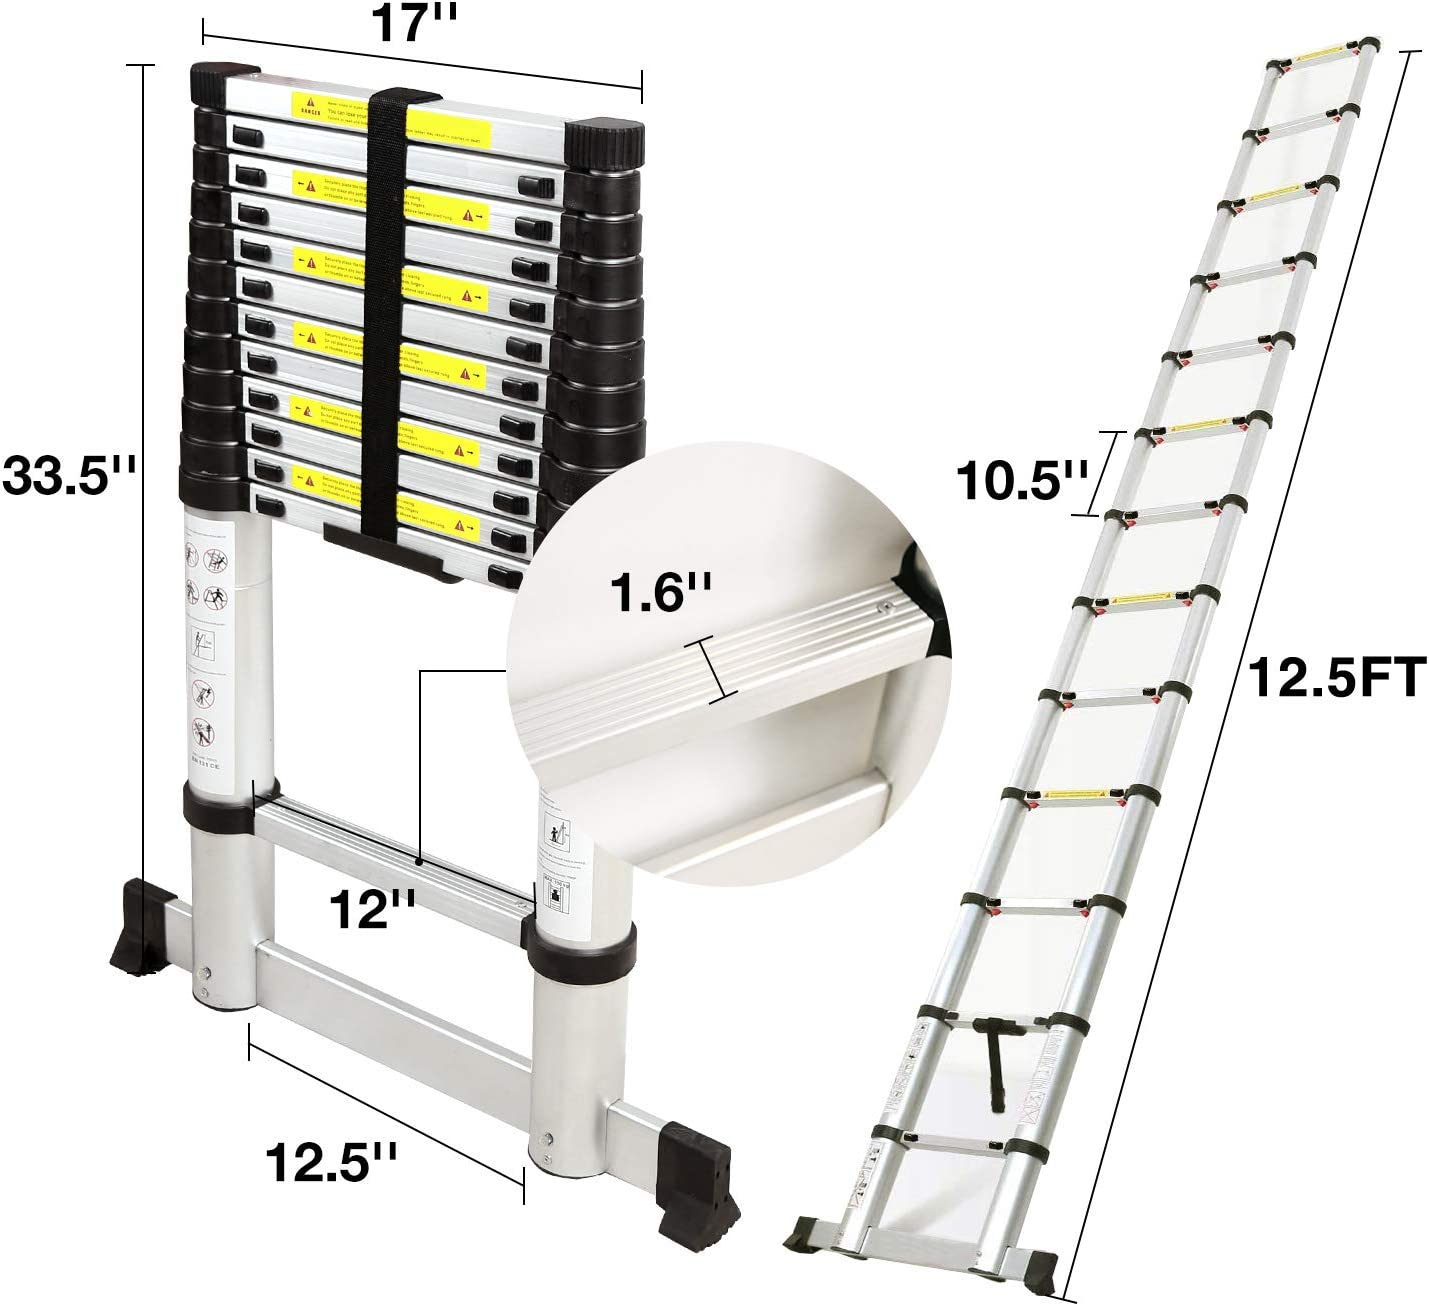 REDCAMP Aluminum Telescoping Ladder 12.5ft with Stabilizer Bar, Folding Telescopic Extension Ladder for RV Home Outdoor Use, Hold 350lbs Capacity - -